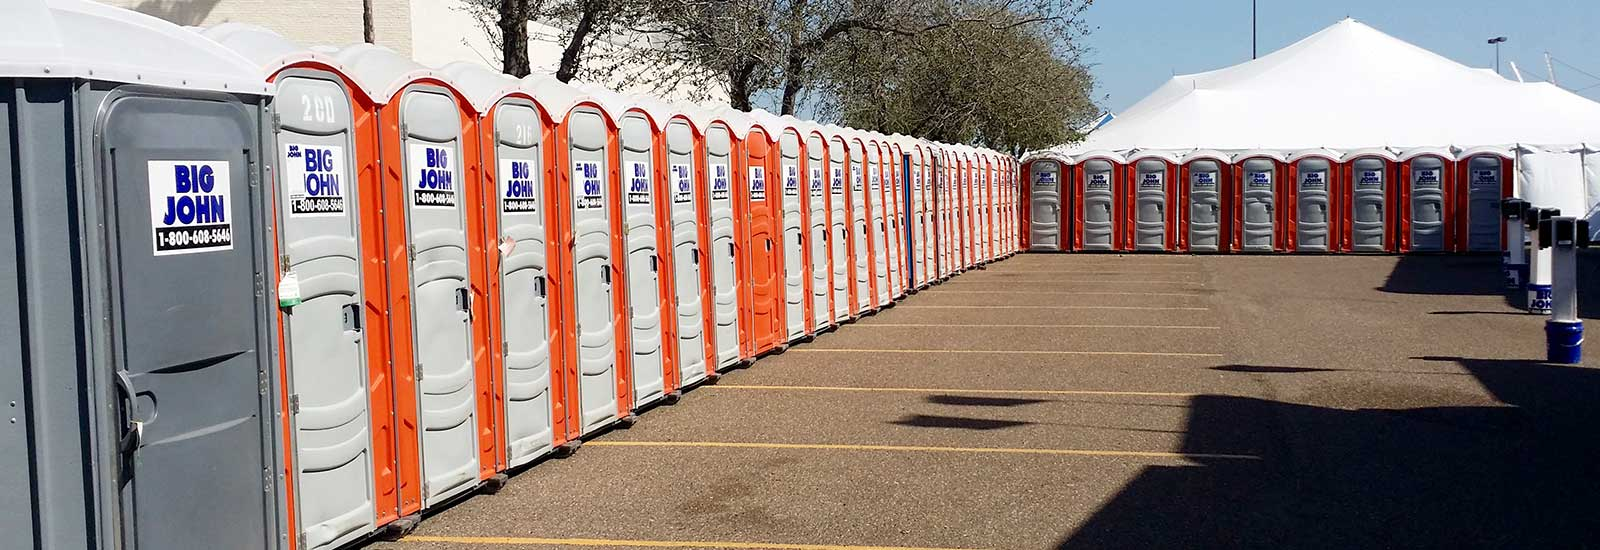 Portable toilet rentals in the Rio Grande Valley and San Antonio